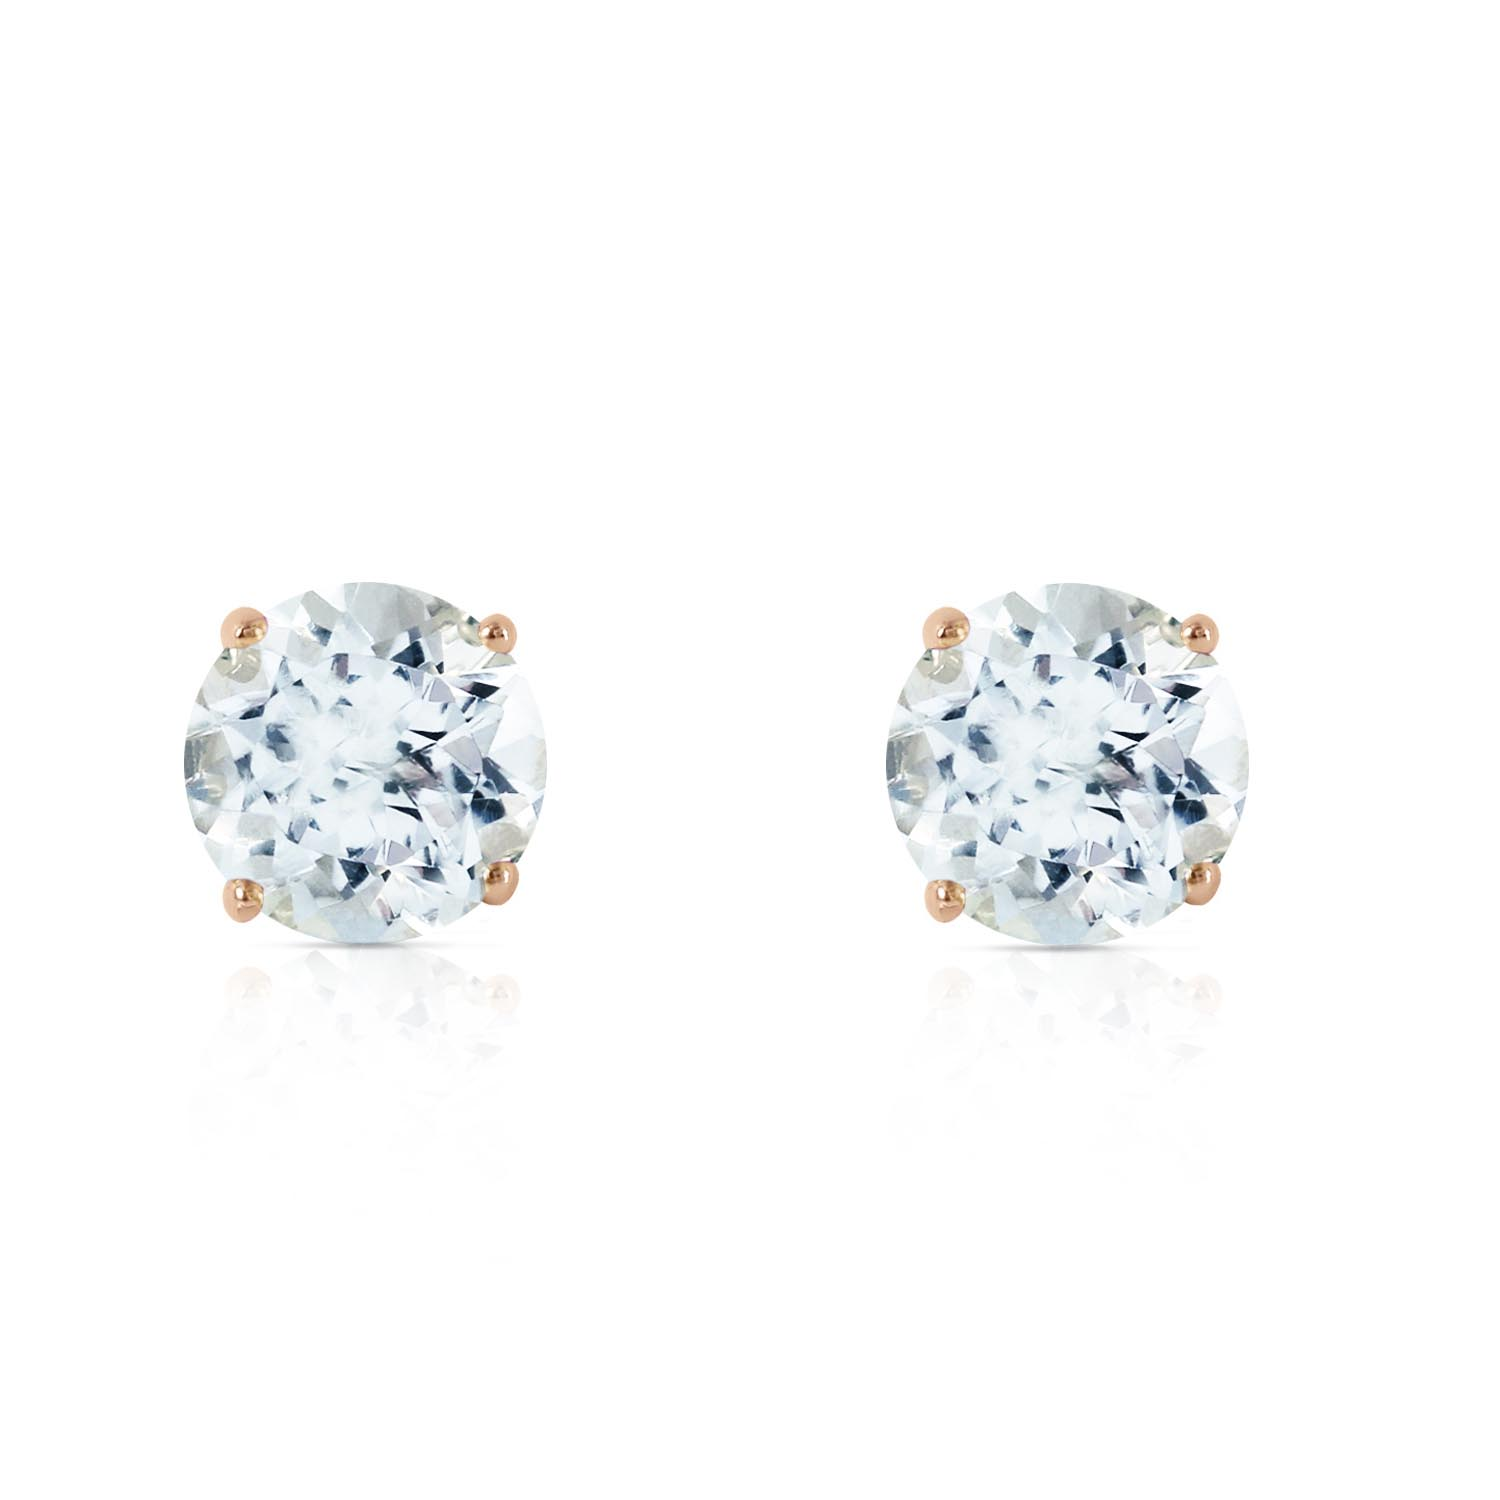 Aquamarine Stud Earrings 0.95ctw in 14K Gold